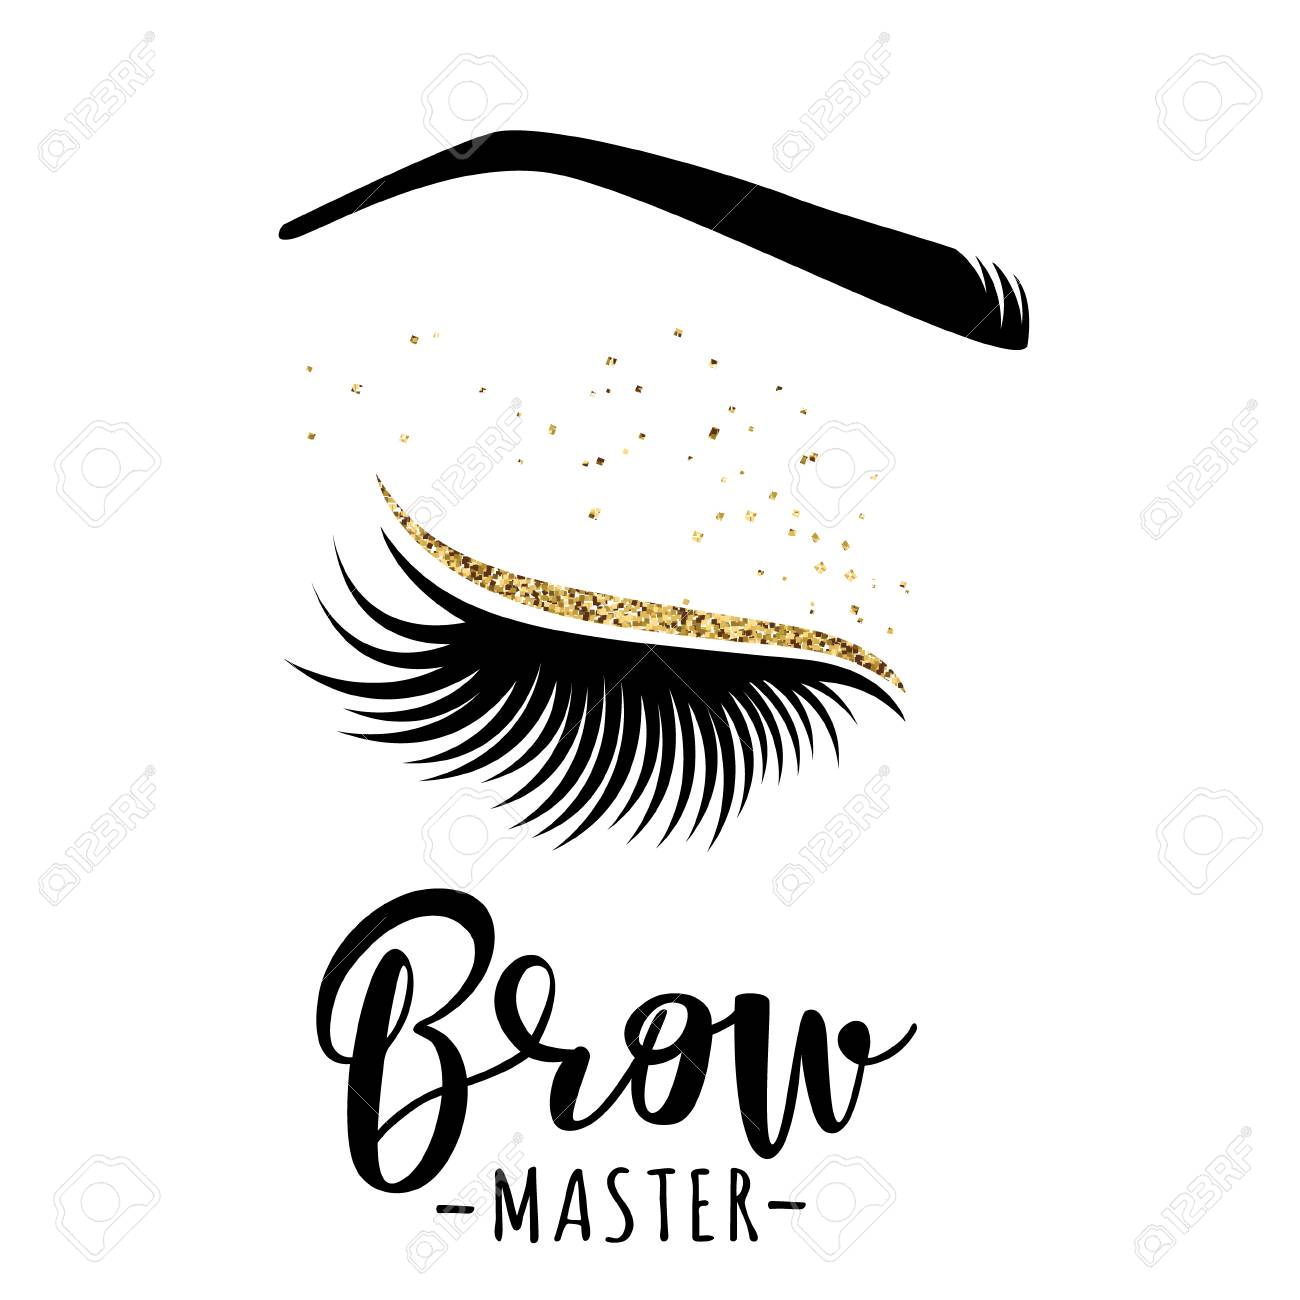 0065cee2c8a Brow master logo. Vector illustration of lashes and brow. For beauty salon,  lash